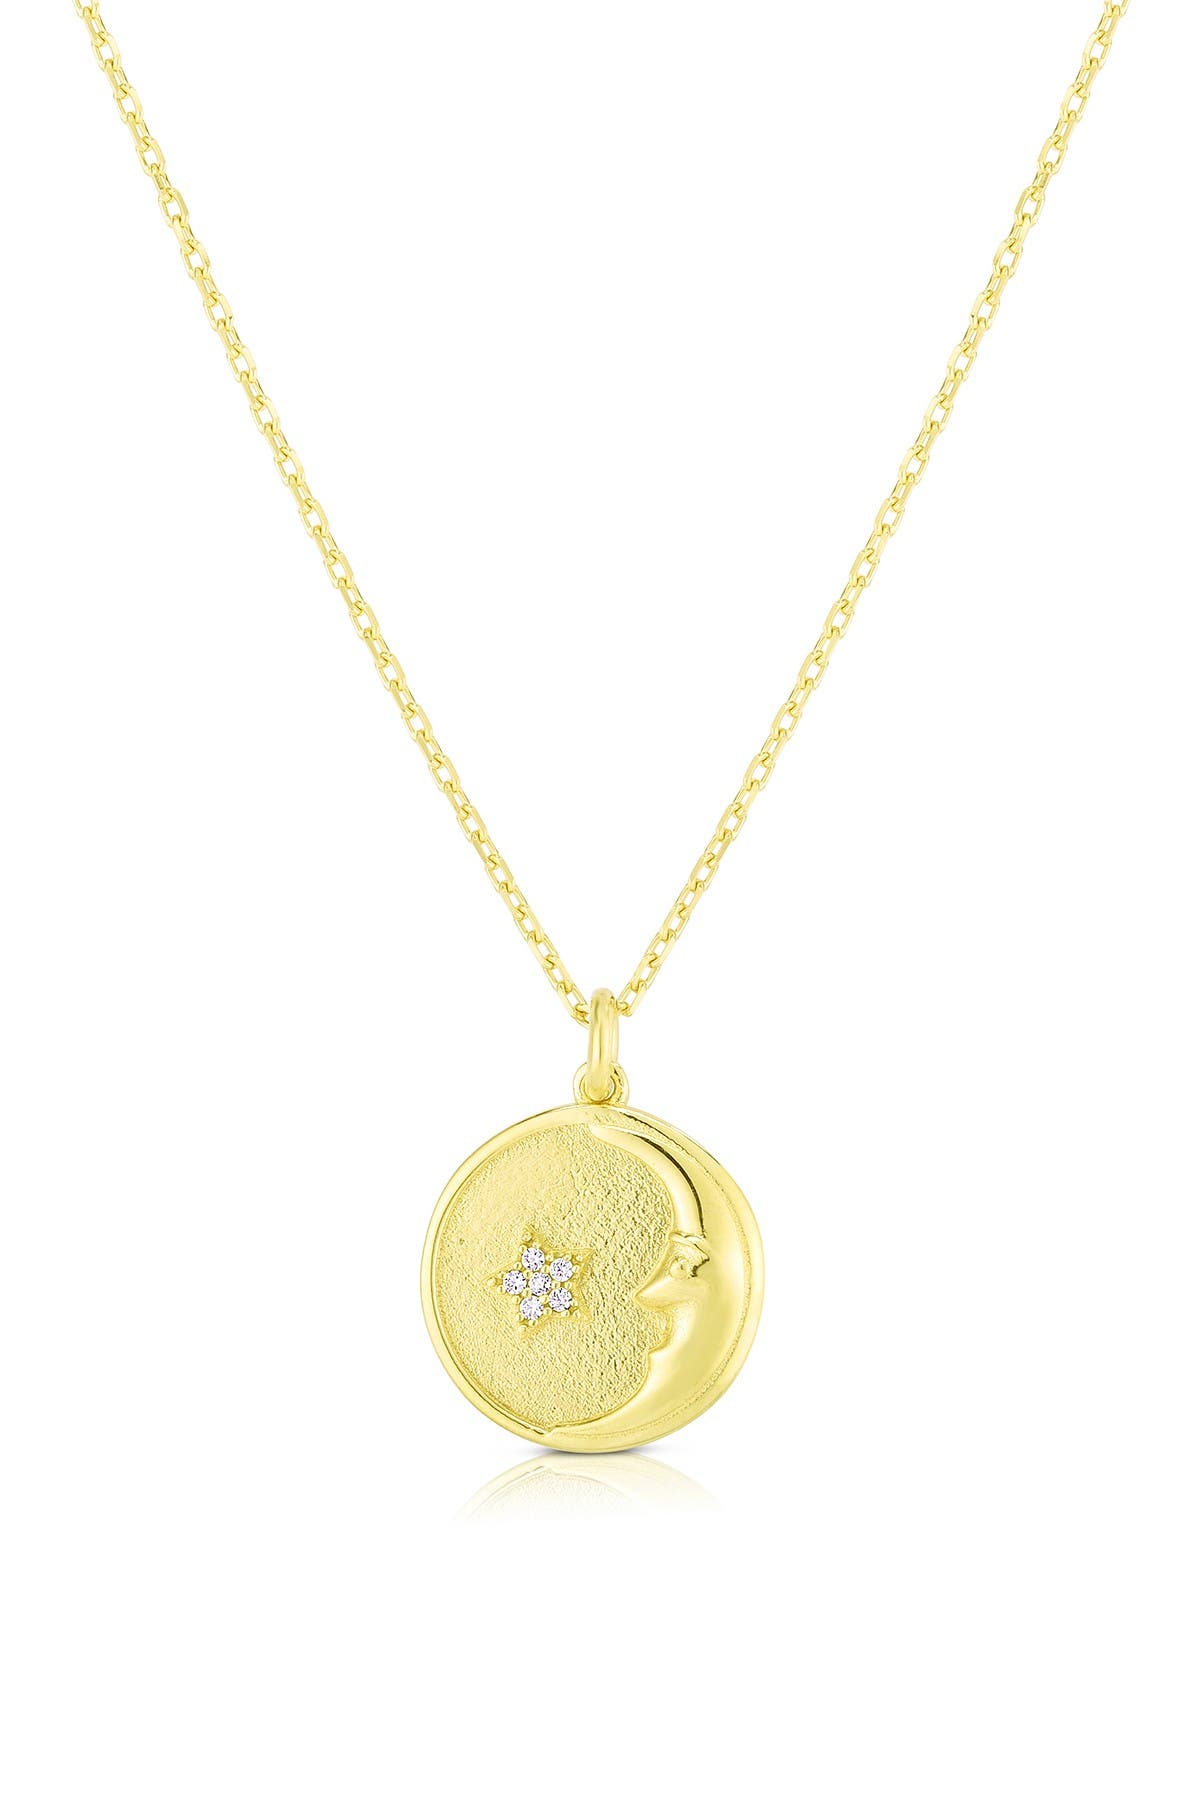 Image of Sphera Milano 14K Gold Plated Sterling Silver Moon Necklace